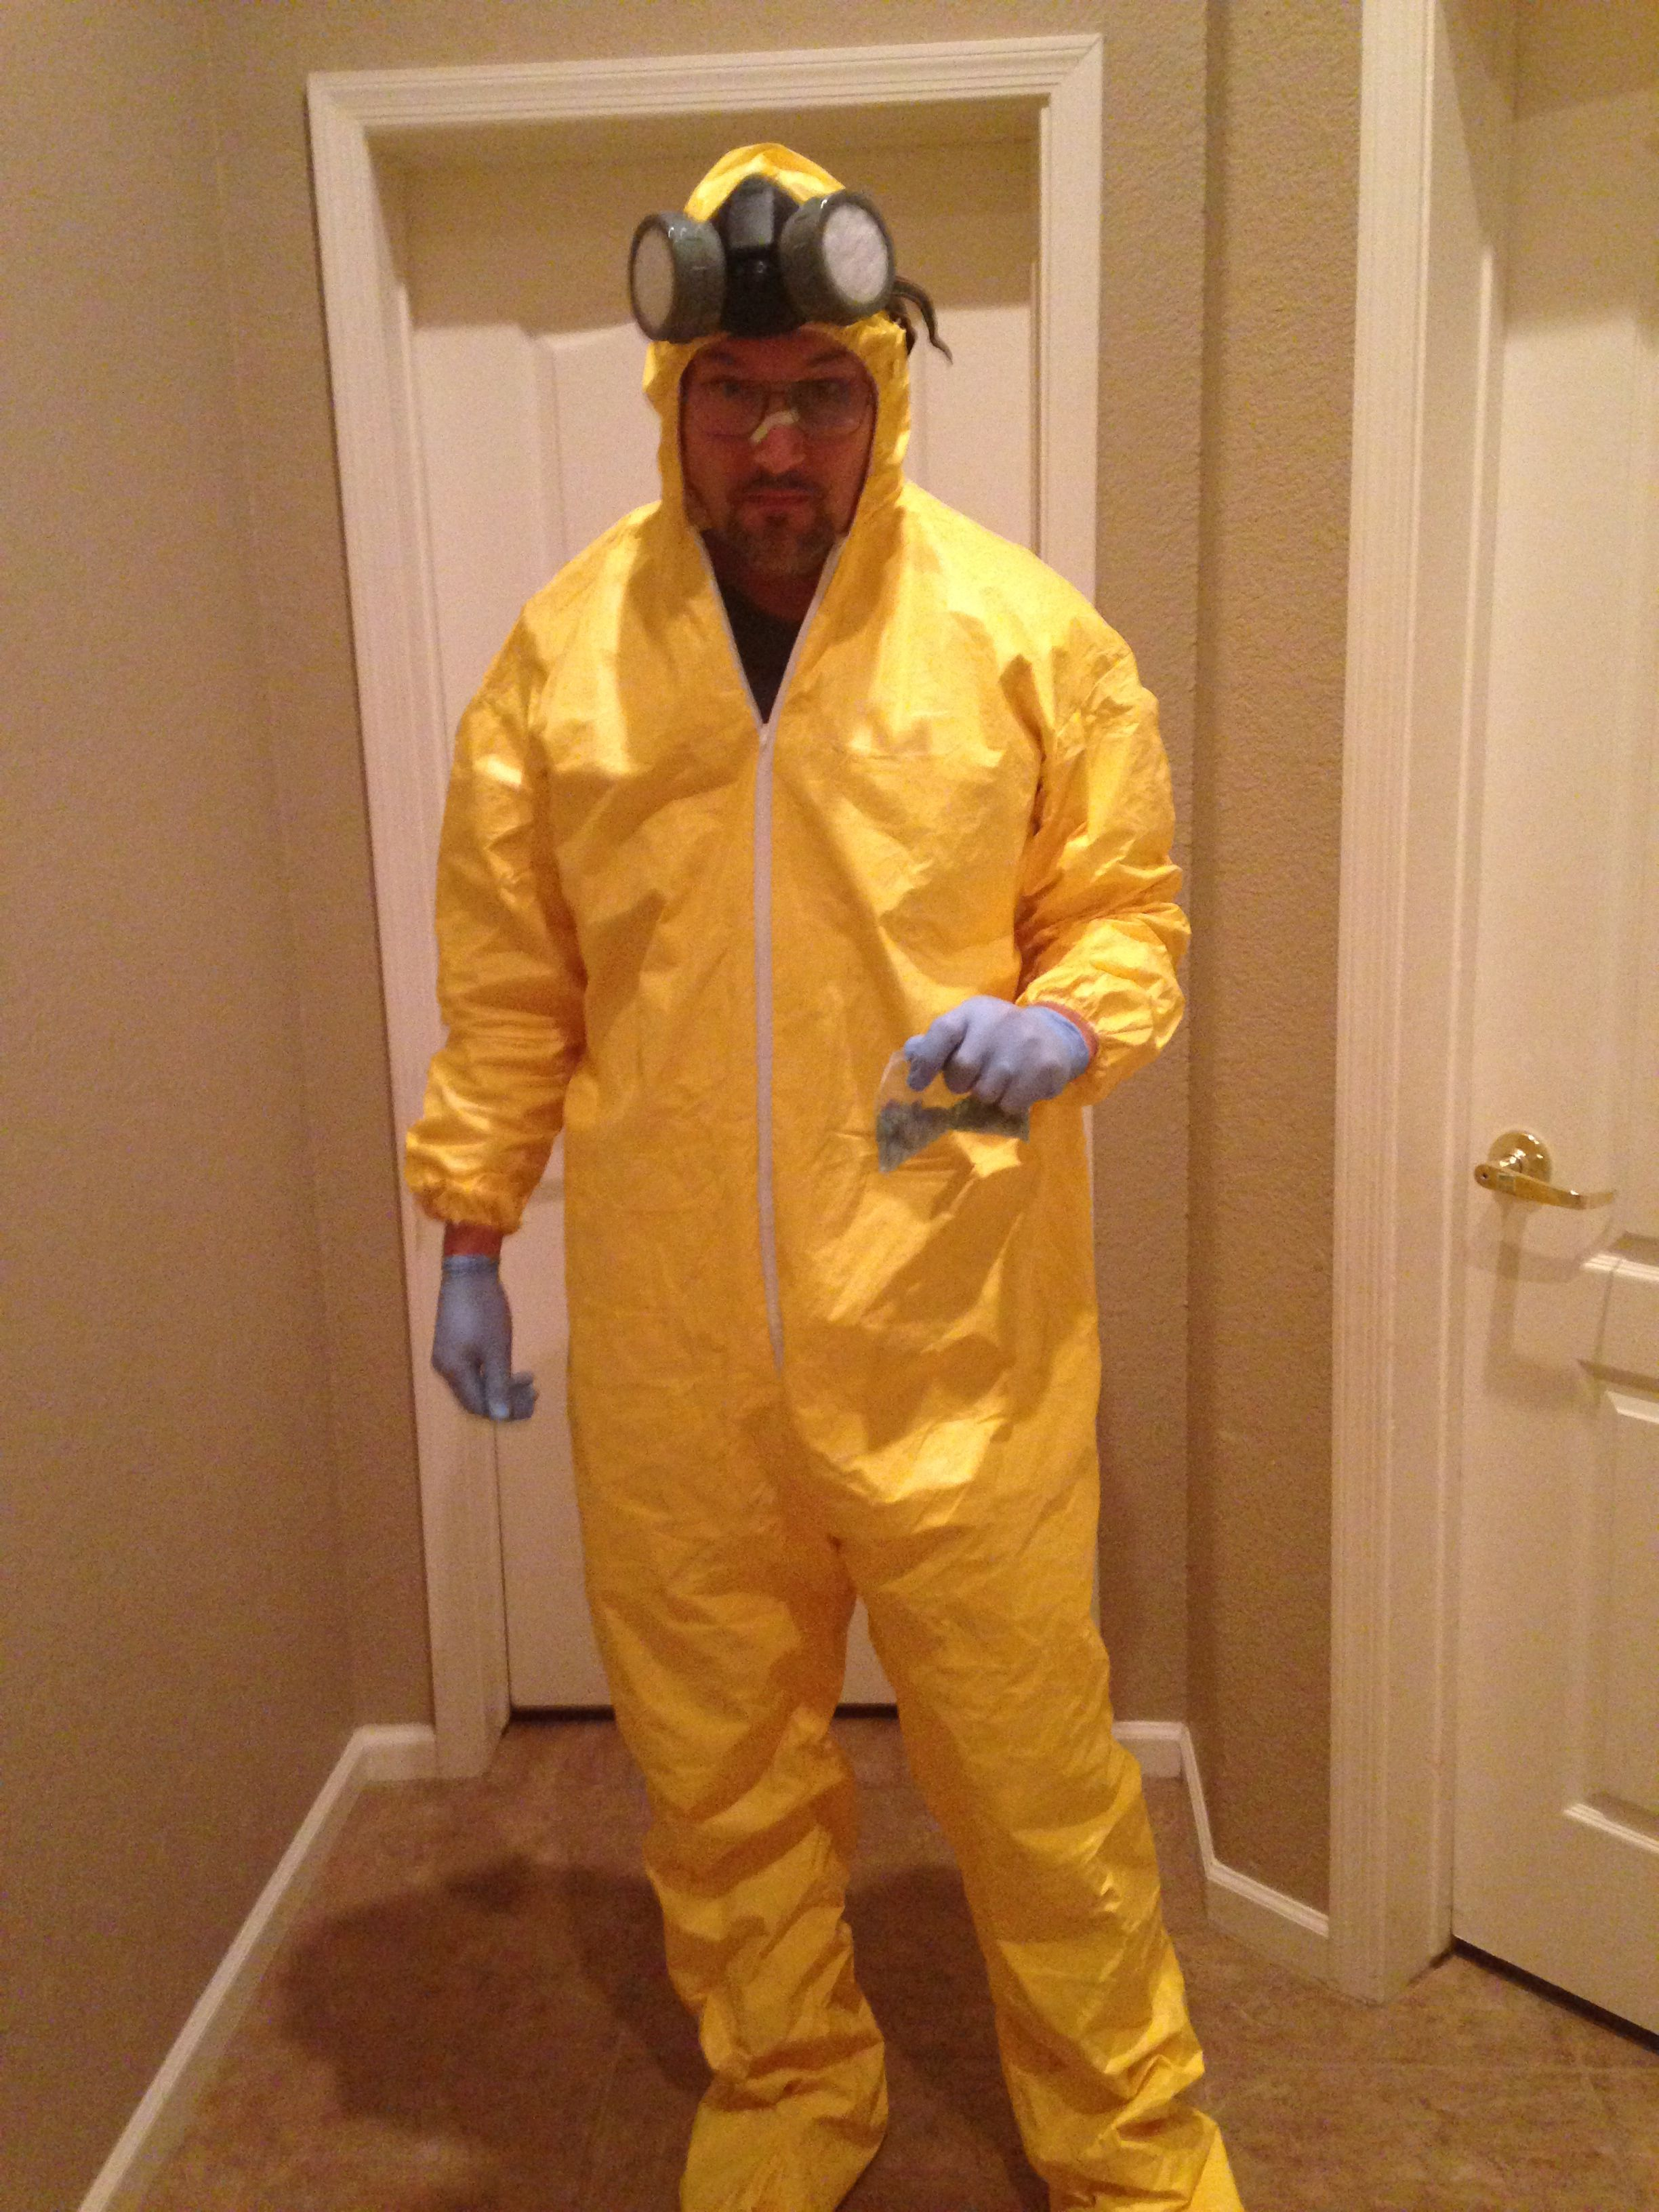 breaking bad halloween costume idea - Halloween Costume Breaking Bad